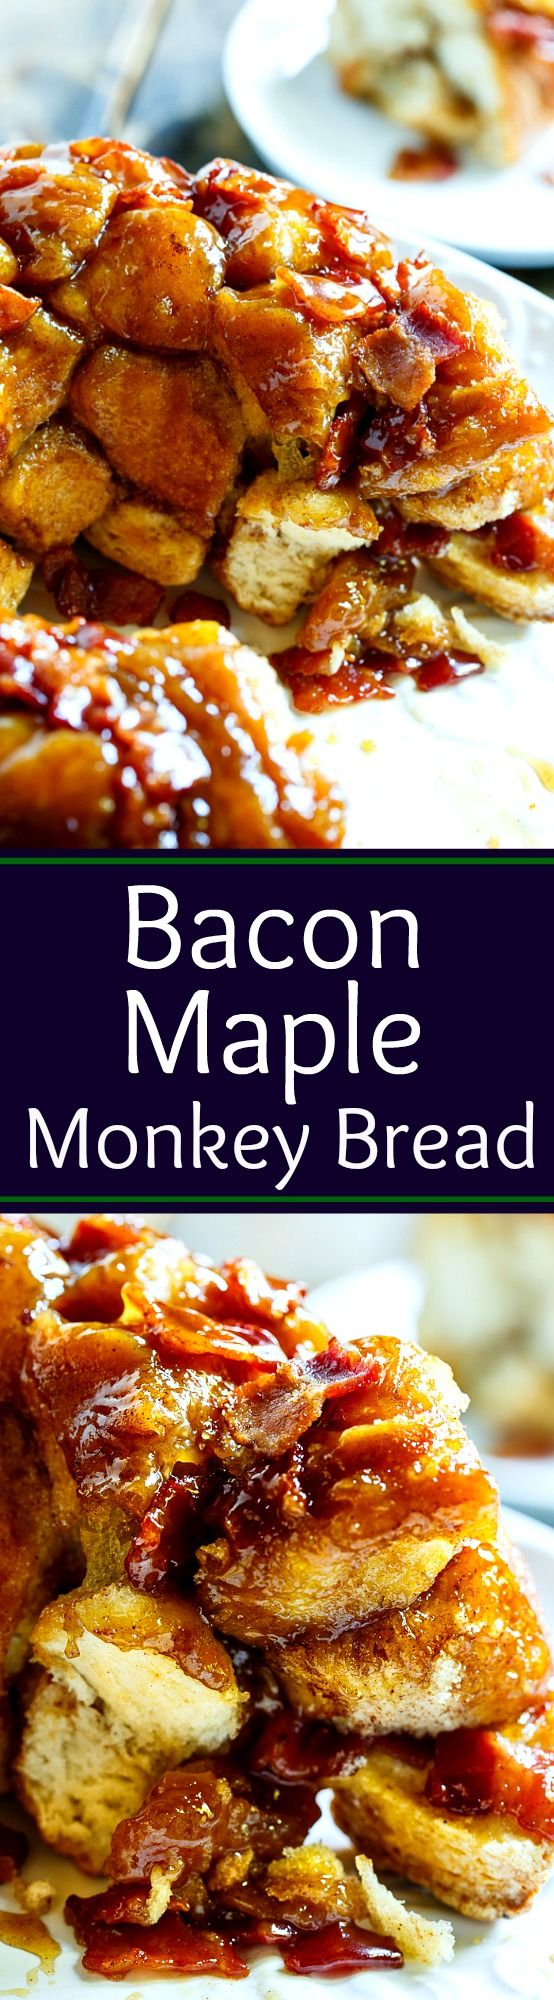 Bacon Maple Monkey Bread- so easy to make from refrigerated biscuits.